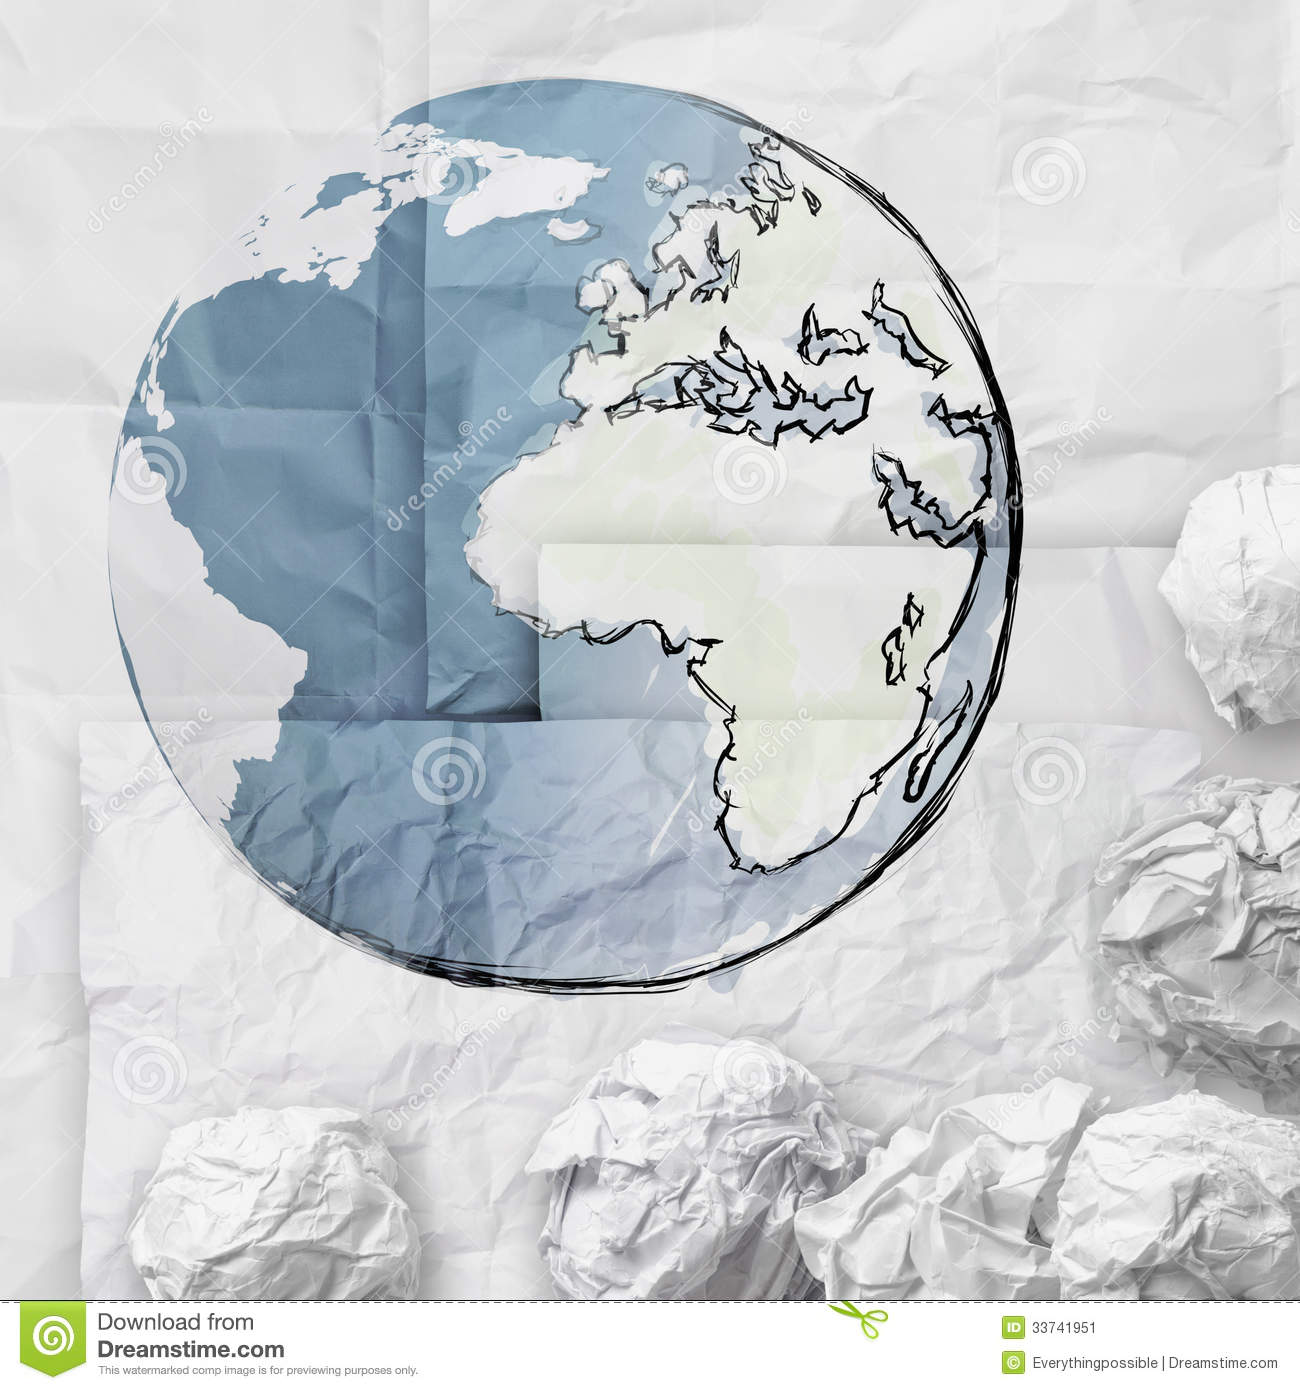 crumpled world paper symbol as concept stock illustration